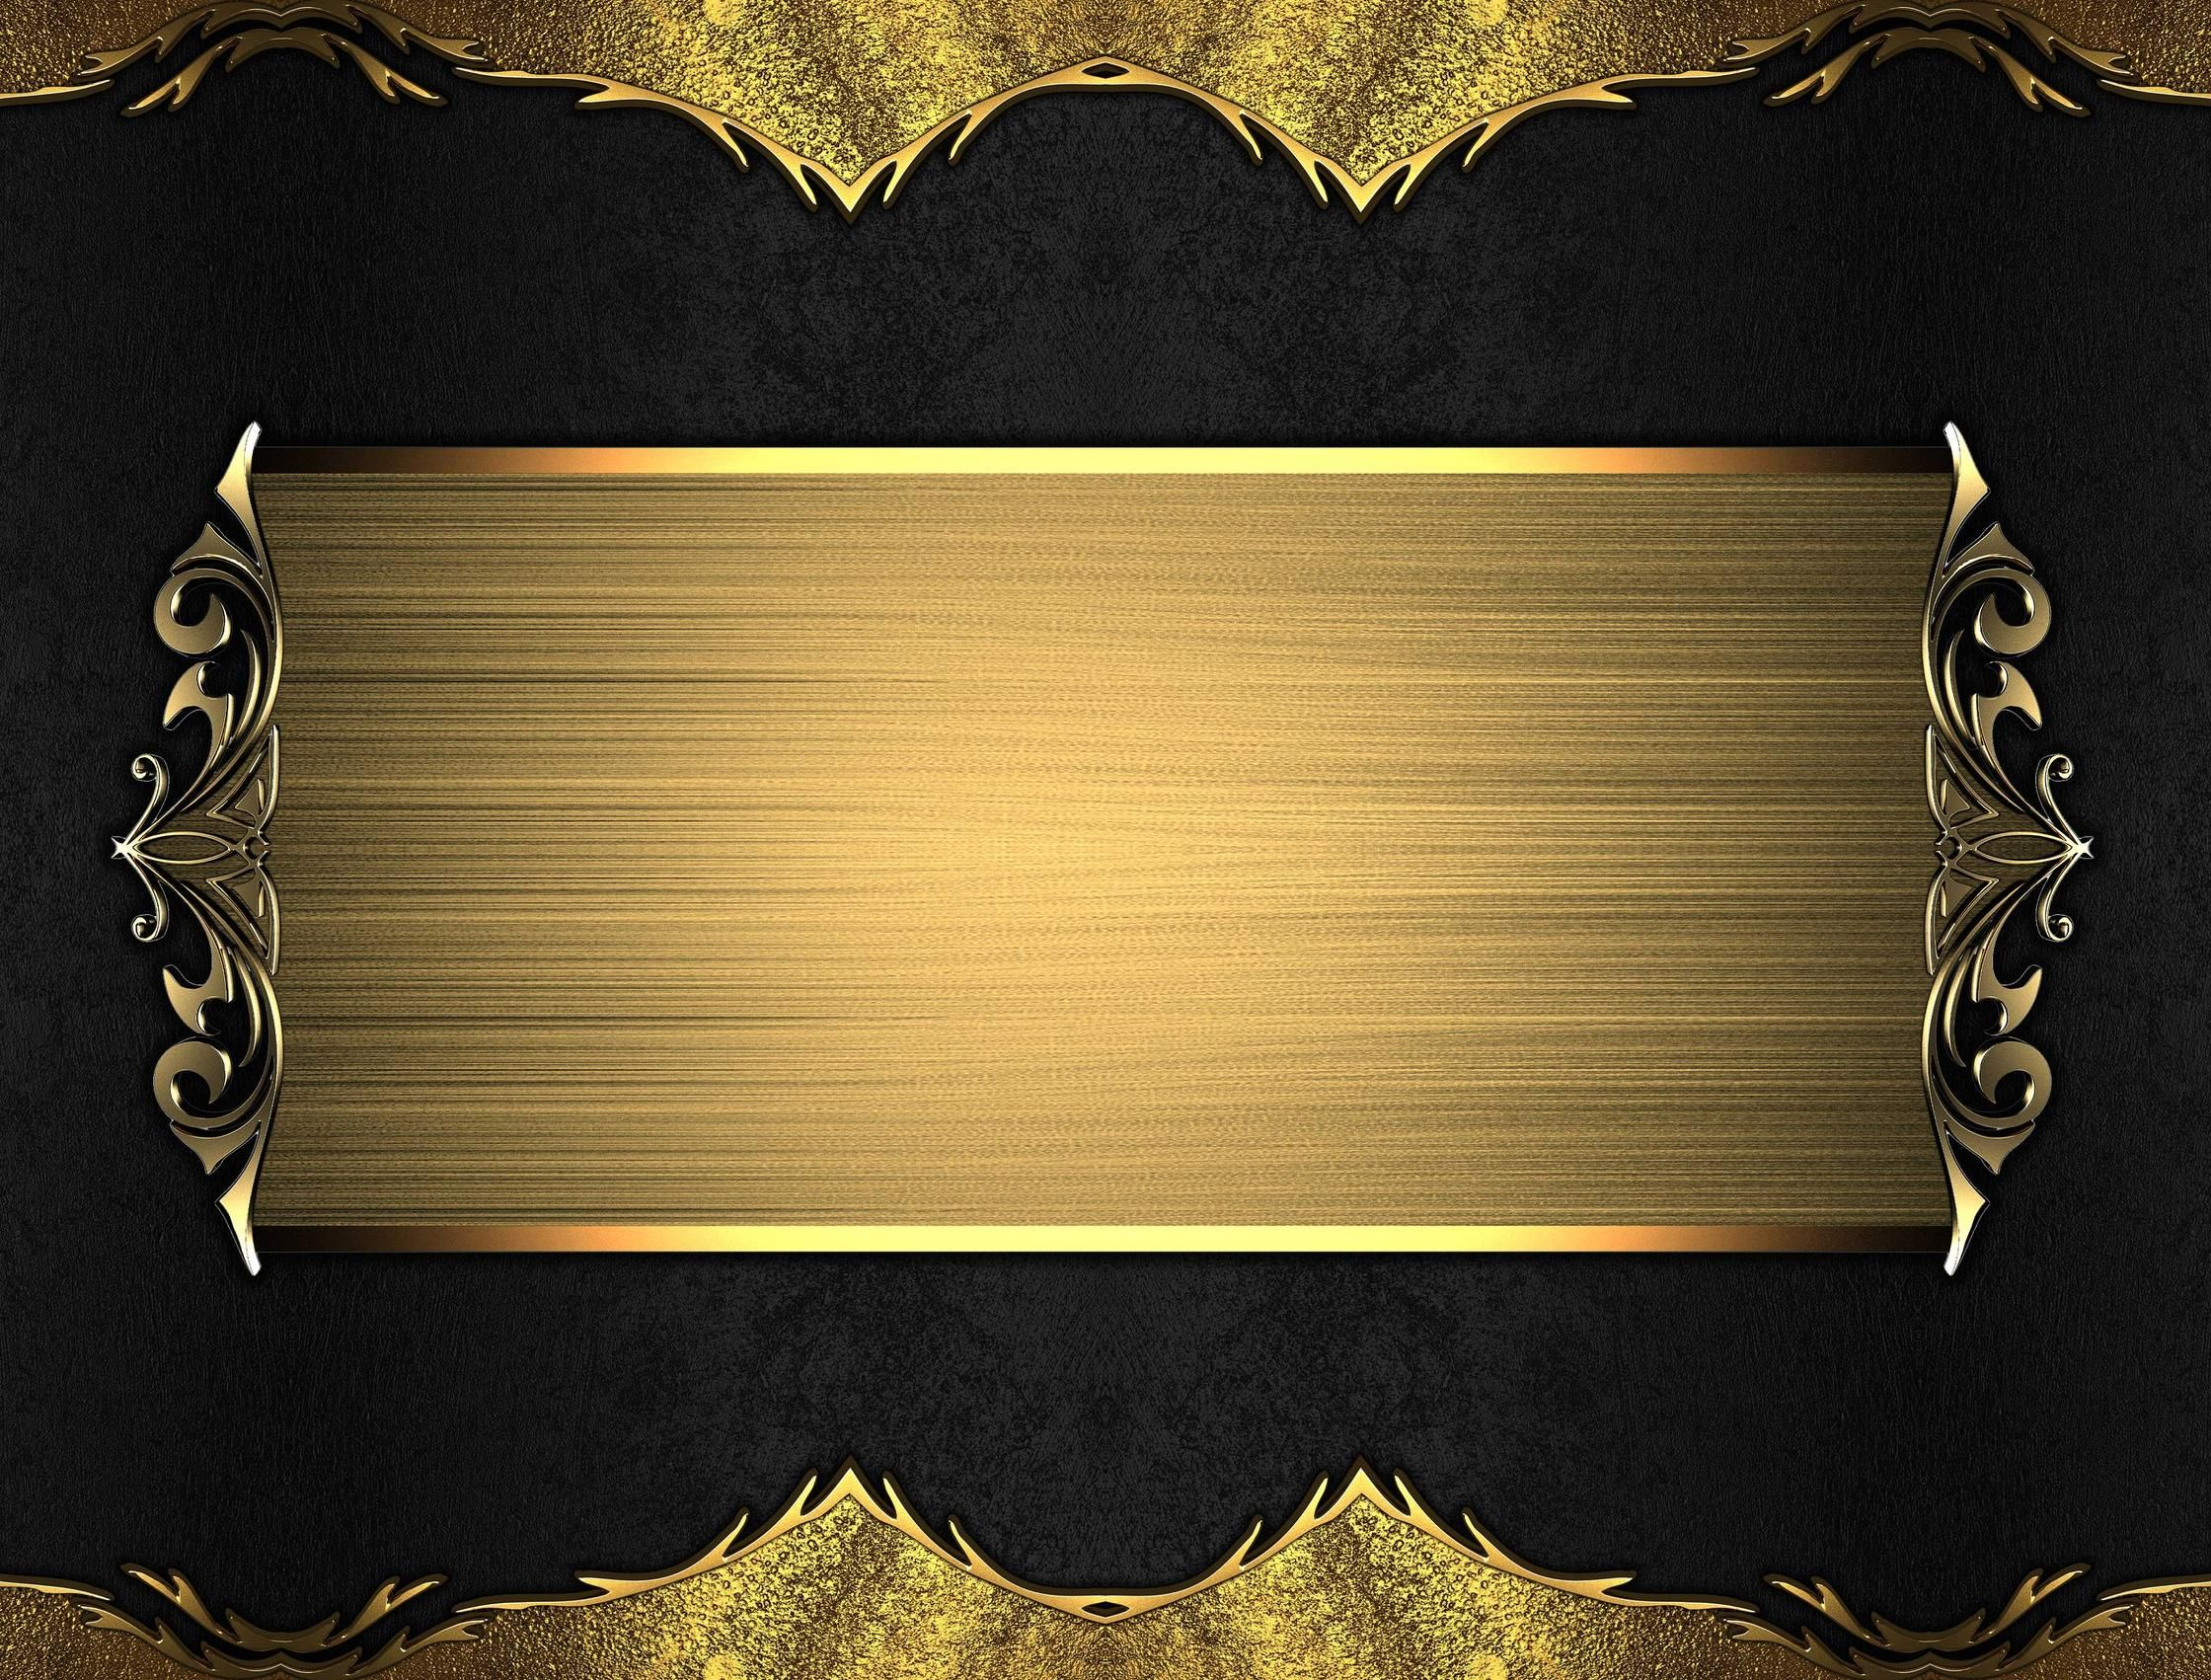 Yellow And Black French Scroll Pillow Black Gold Background Wallpapersafari Gold Background Black Gold Gold Wallpaper